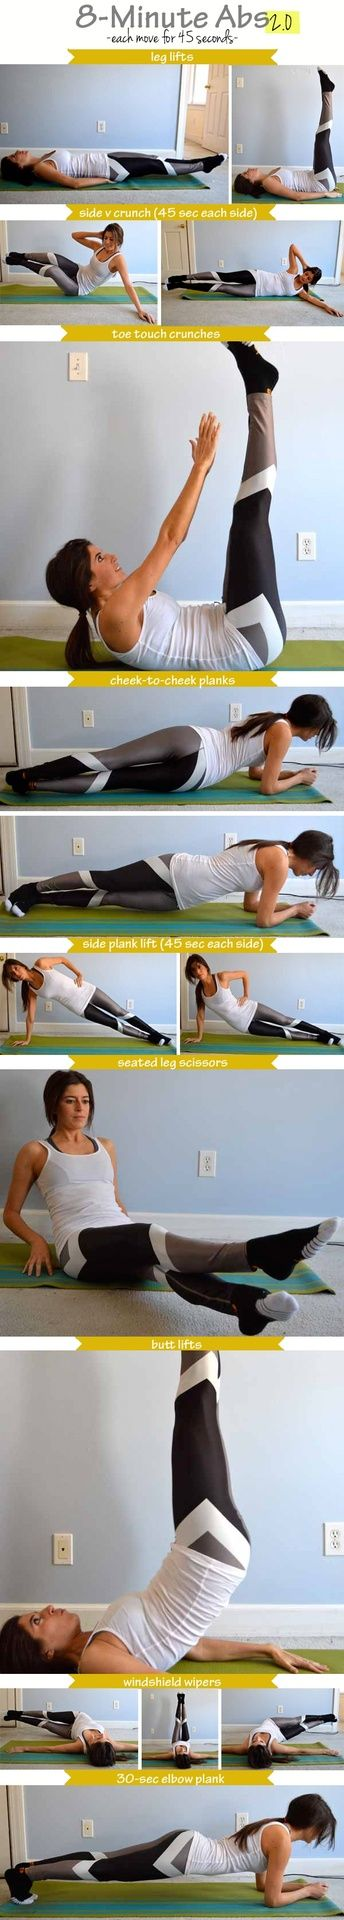 8-Minute Abs 2.0  like that she demonstrates both parts of the move. love that pants like those exist.